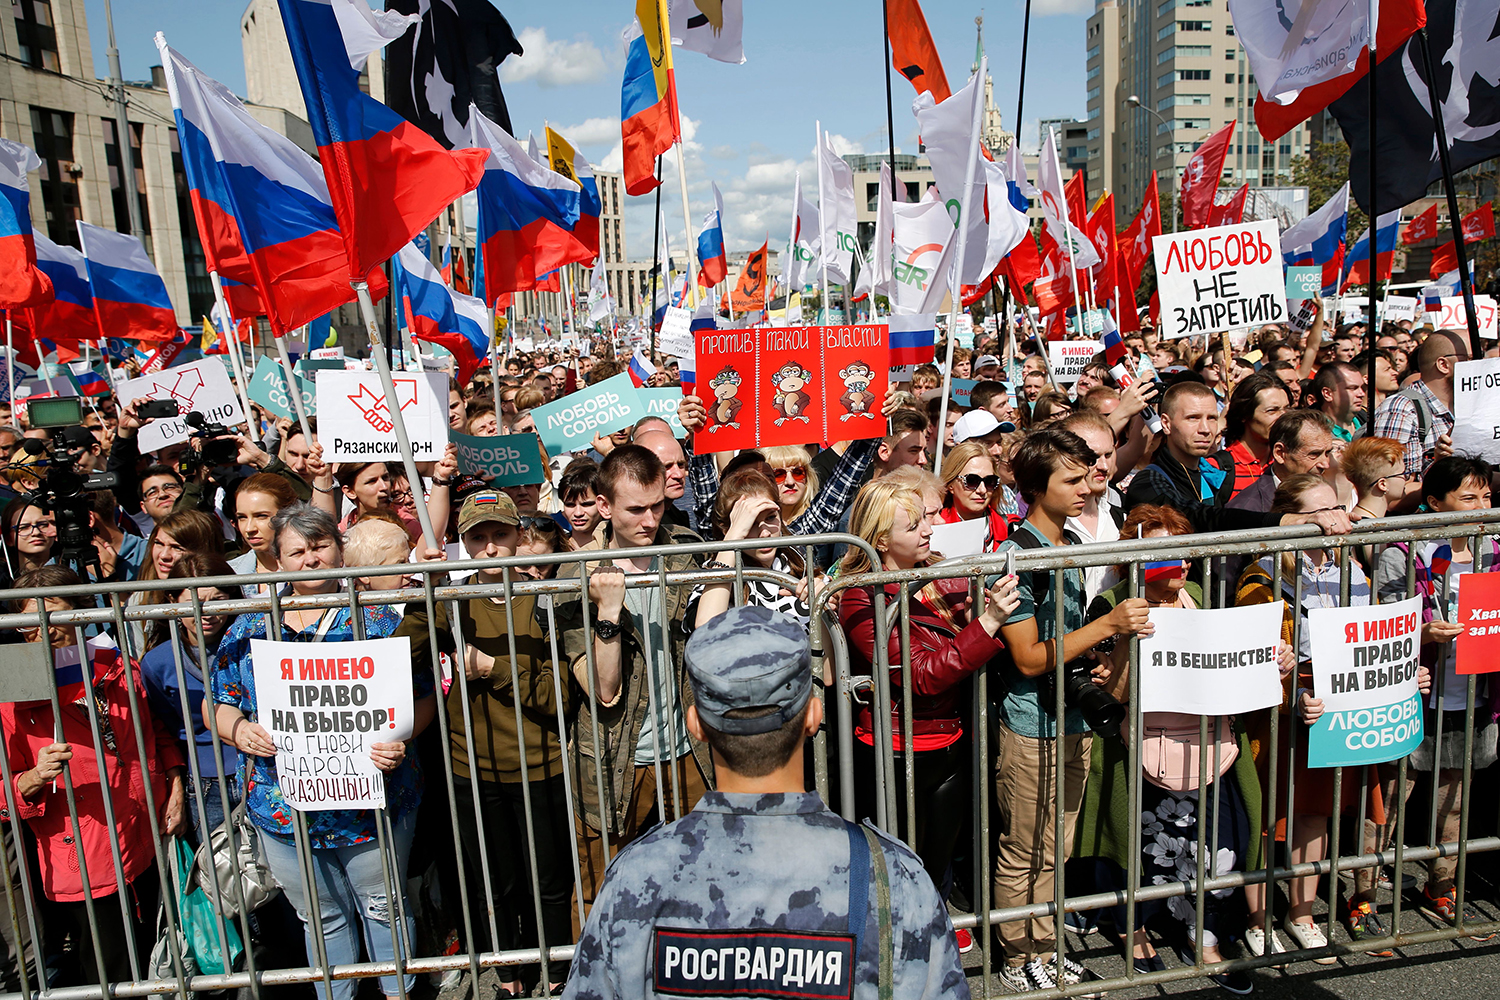 RUSSIA | Demonstrators take part in a rally to support opposition and independent candidates after authorities refused to register them for September elections in Moscow on July 20. MAXIM ZMEYEV/AFP via Getty Images